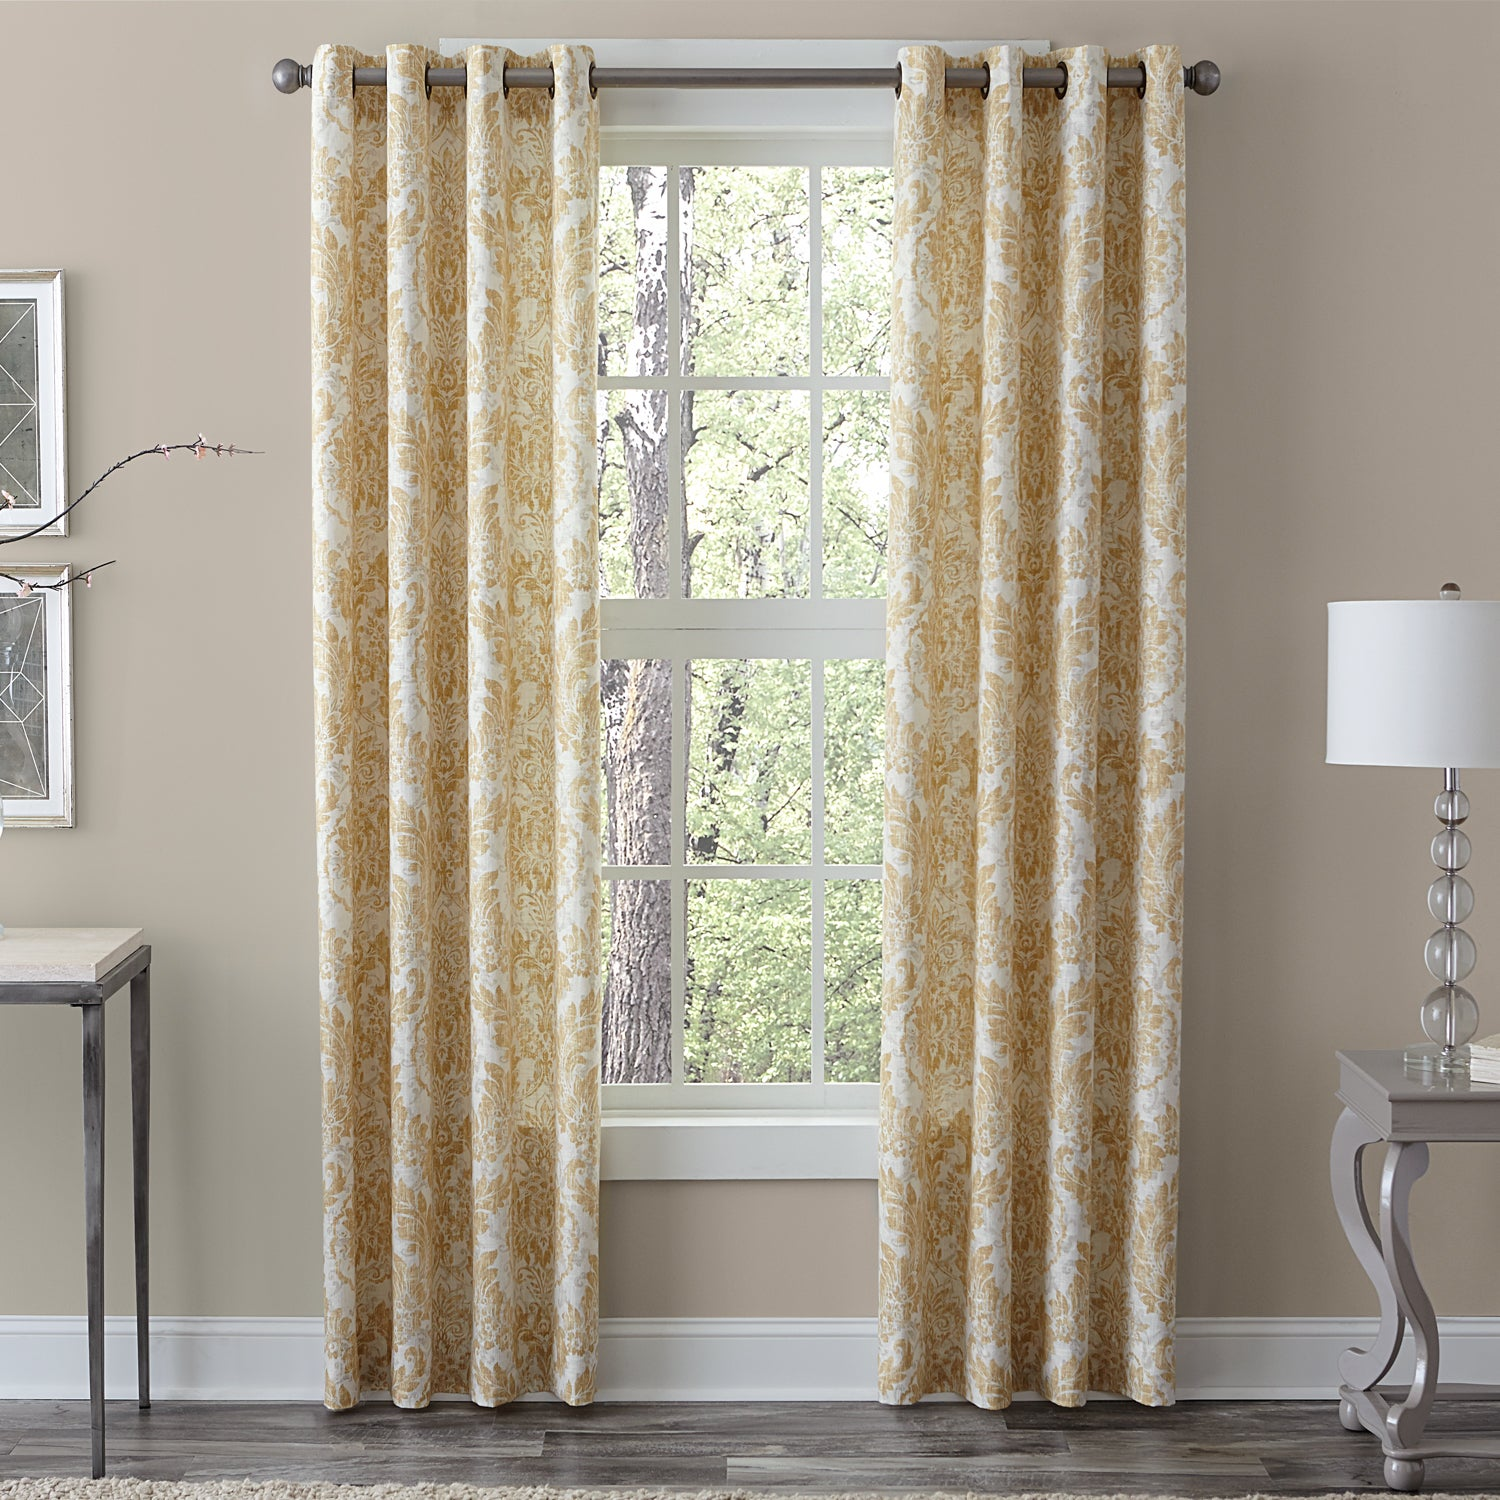 Grommet Window Curtain Panels Light Gray with Ivory Medallion 2 Set of Two